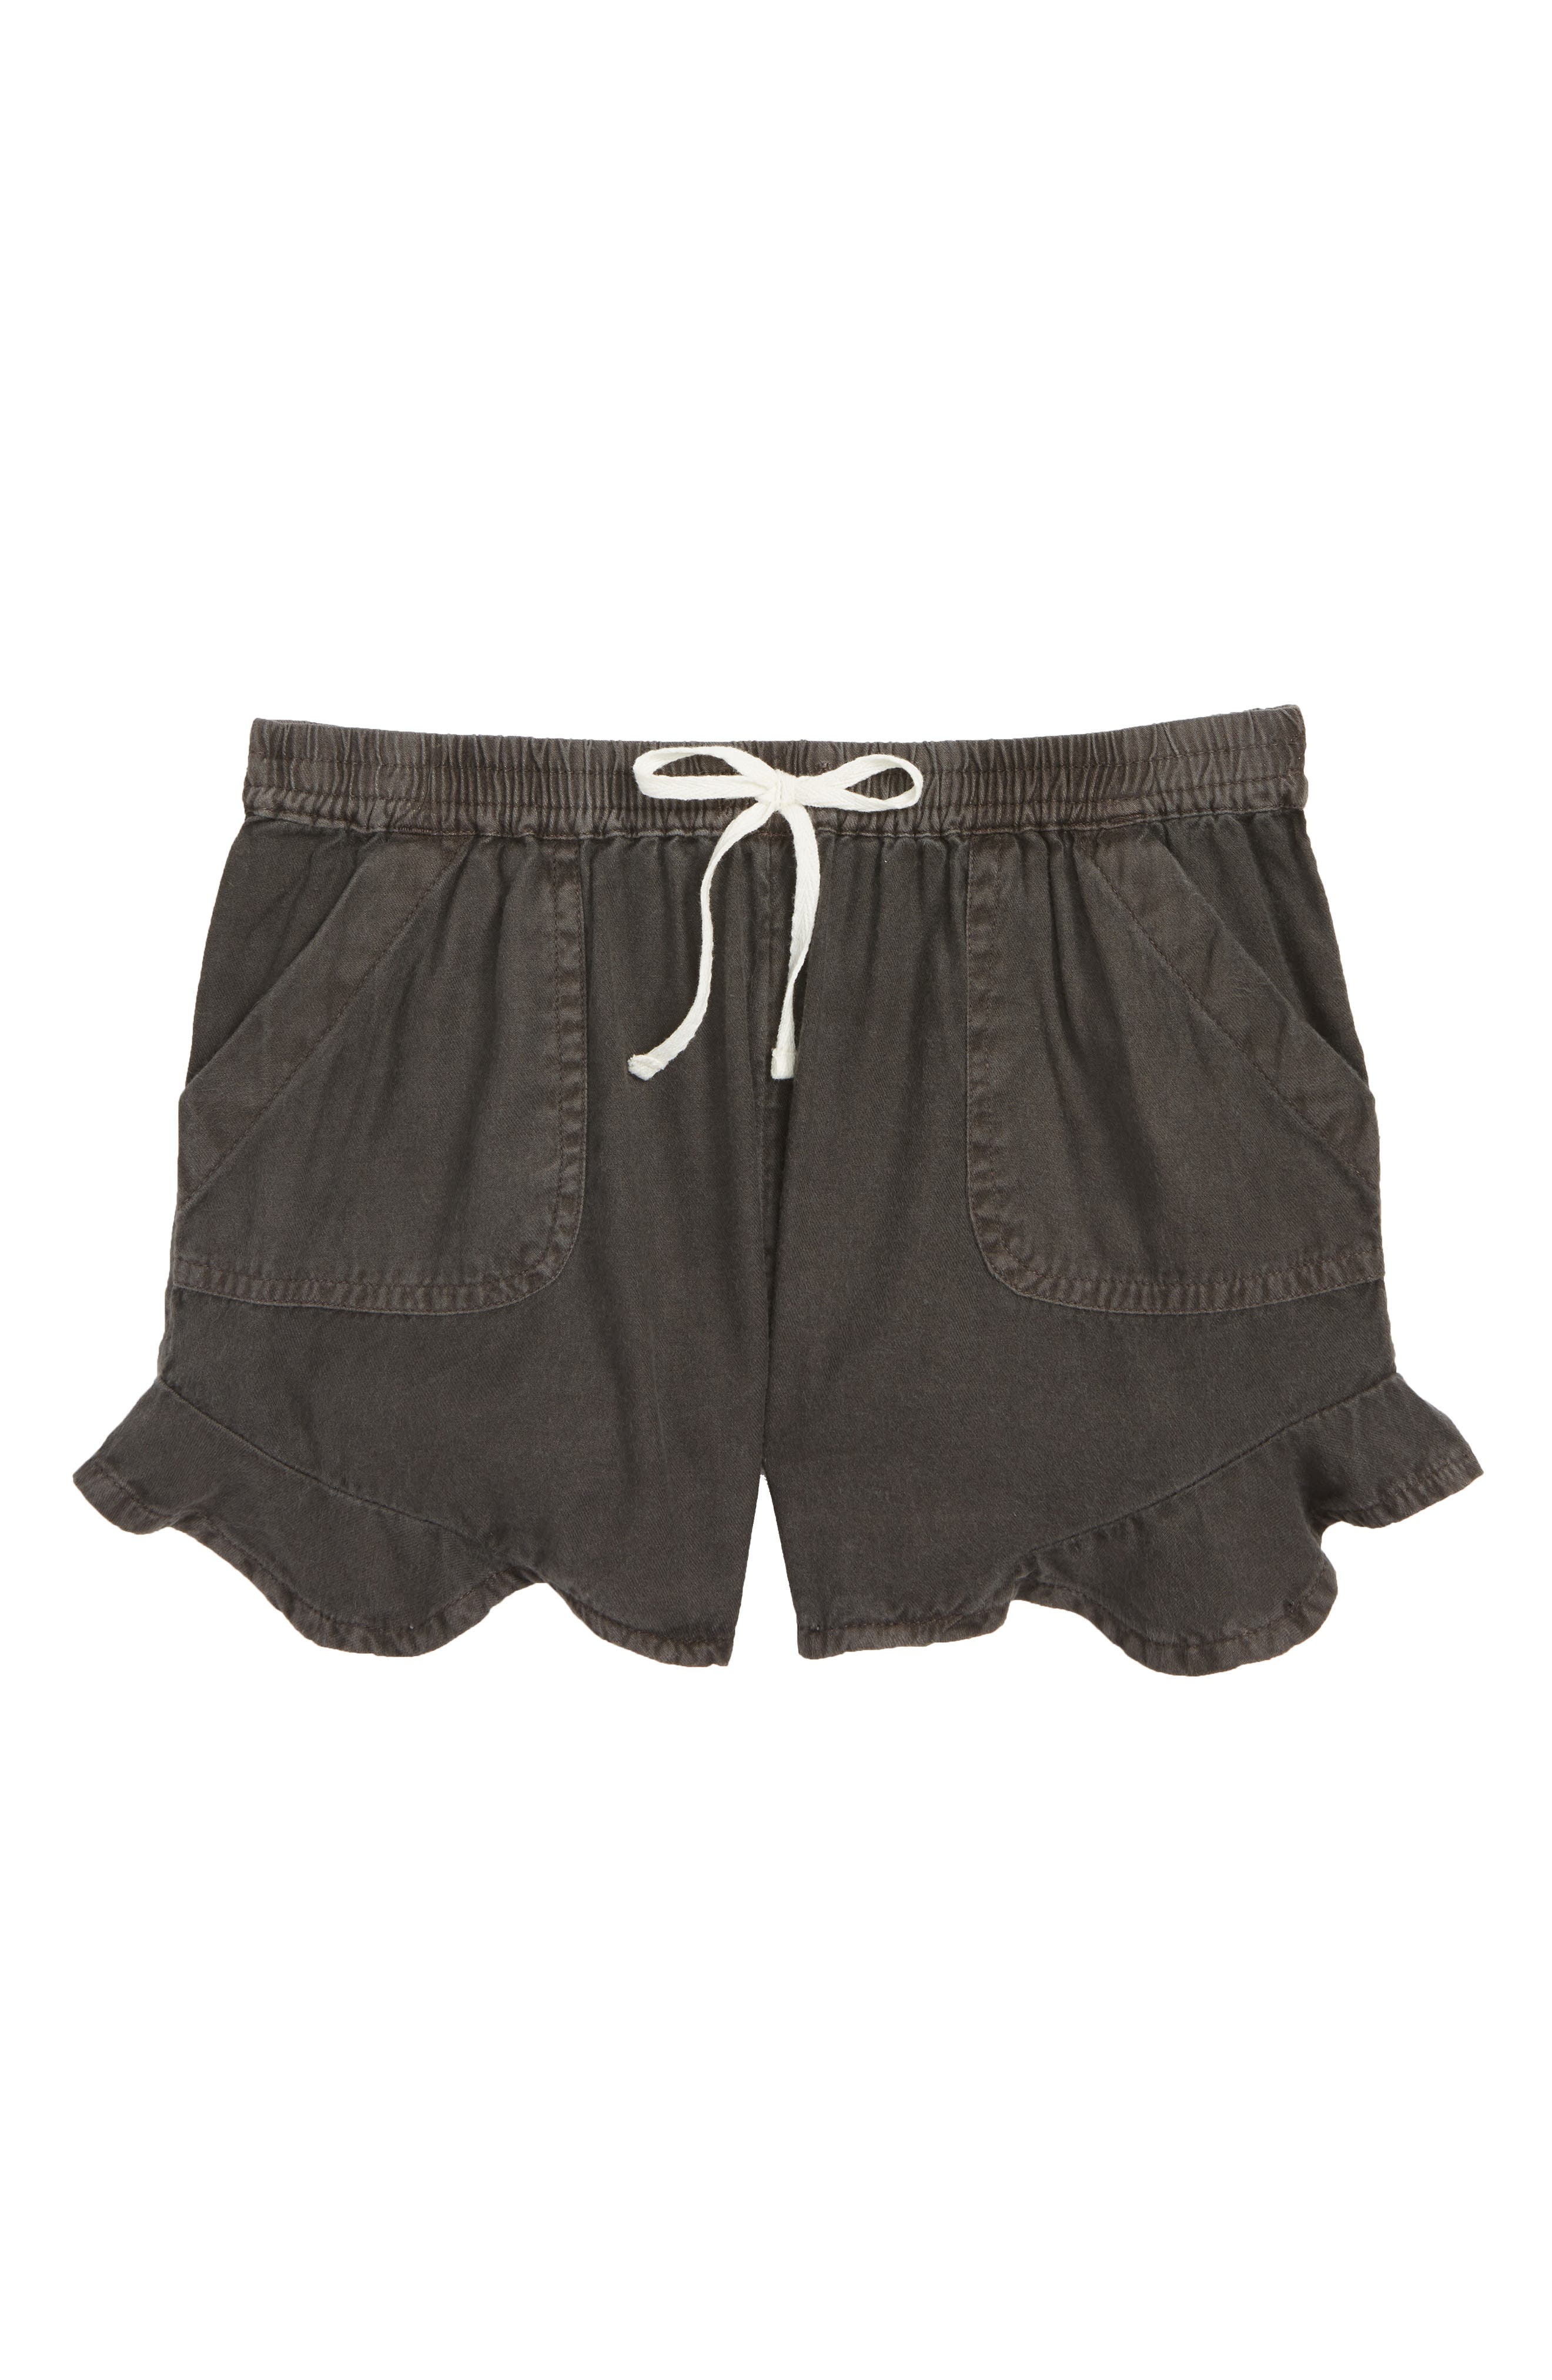 Mad For Summer Shorts,                             Main thumbnail 1, color,                             Black